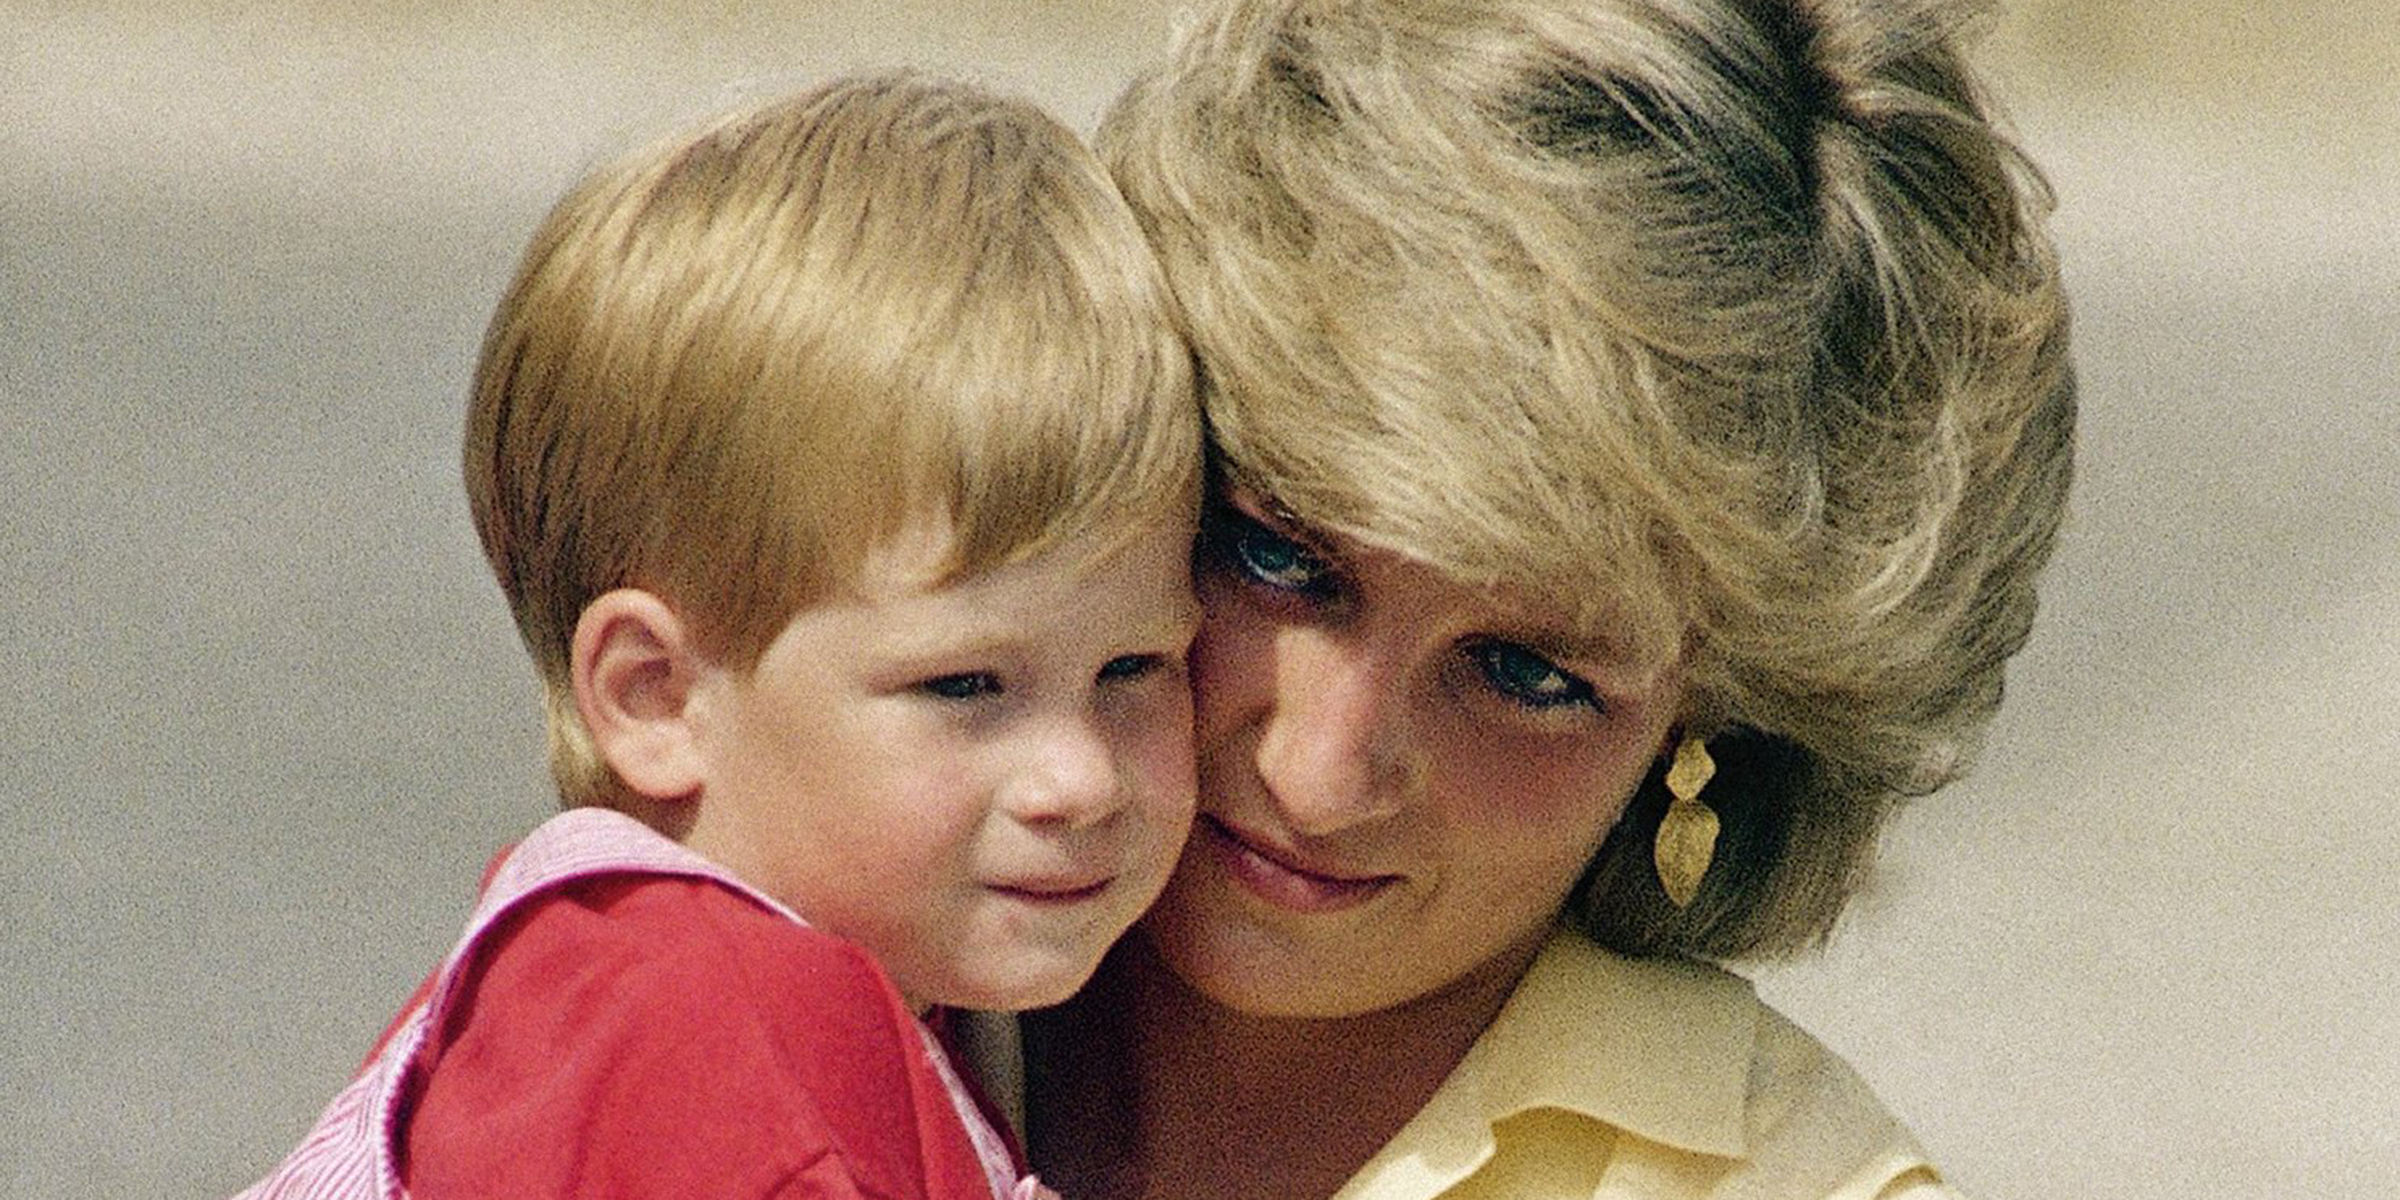 Prince Harry says Princess Diana's death is 'a wound that festers'